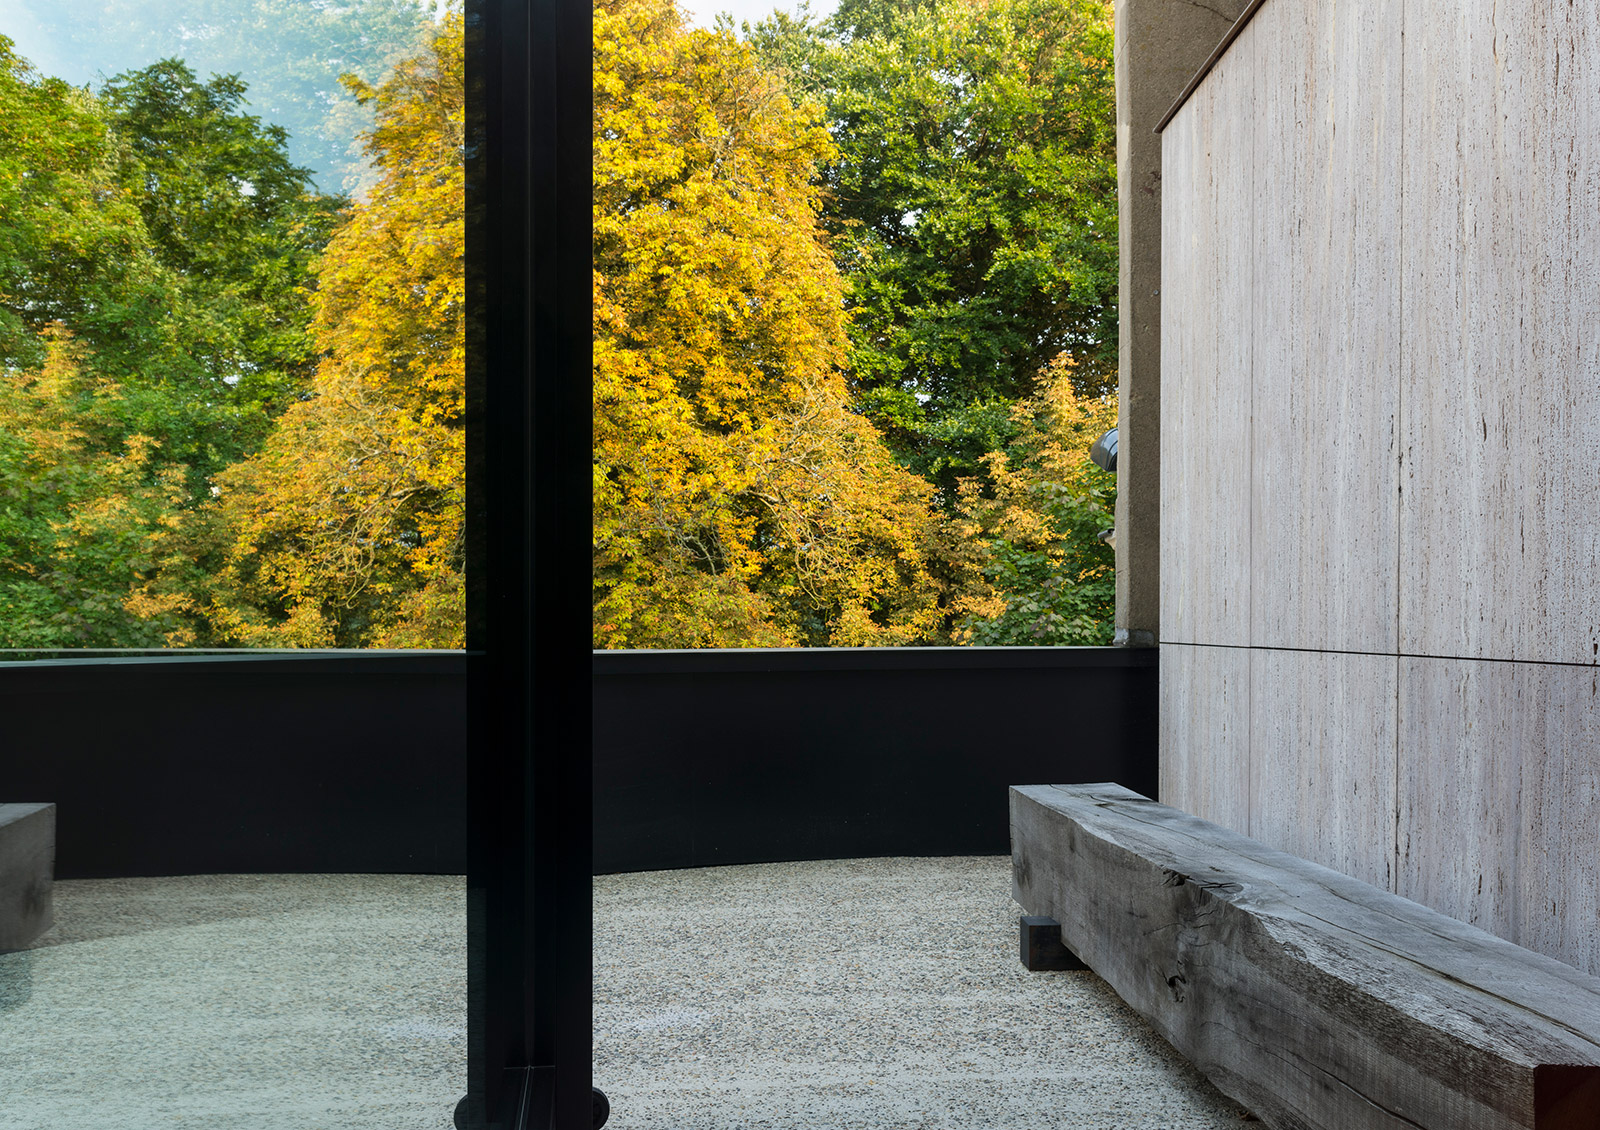 Architect Glenn Sestig's modernist townhouse is for sale in Ghent